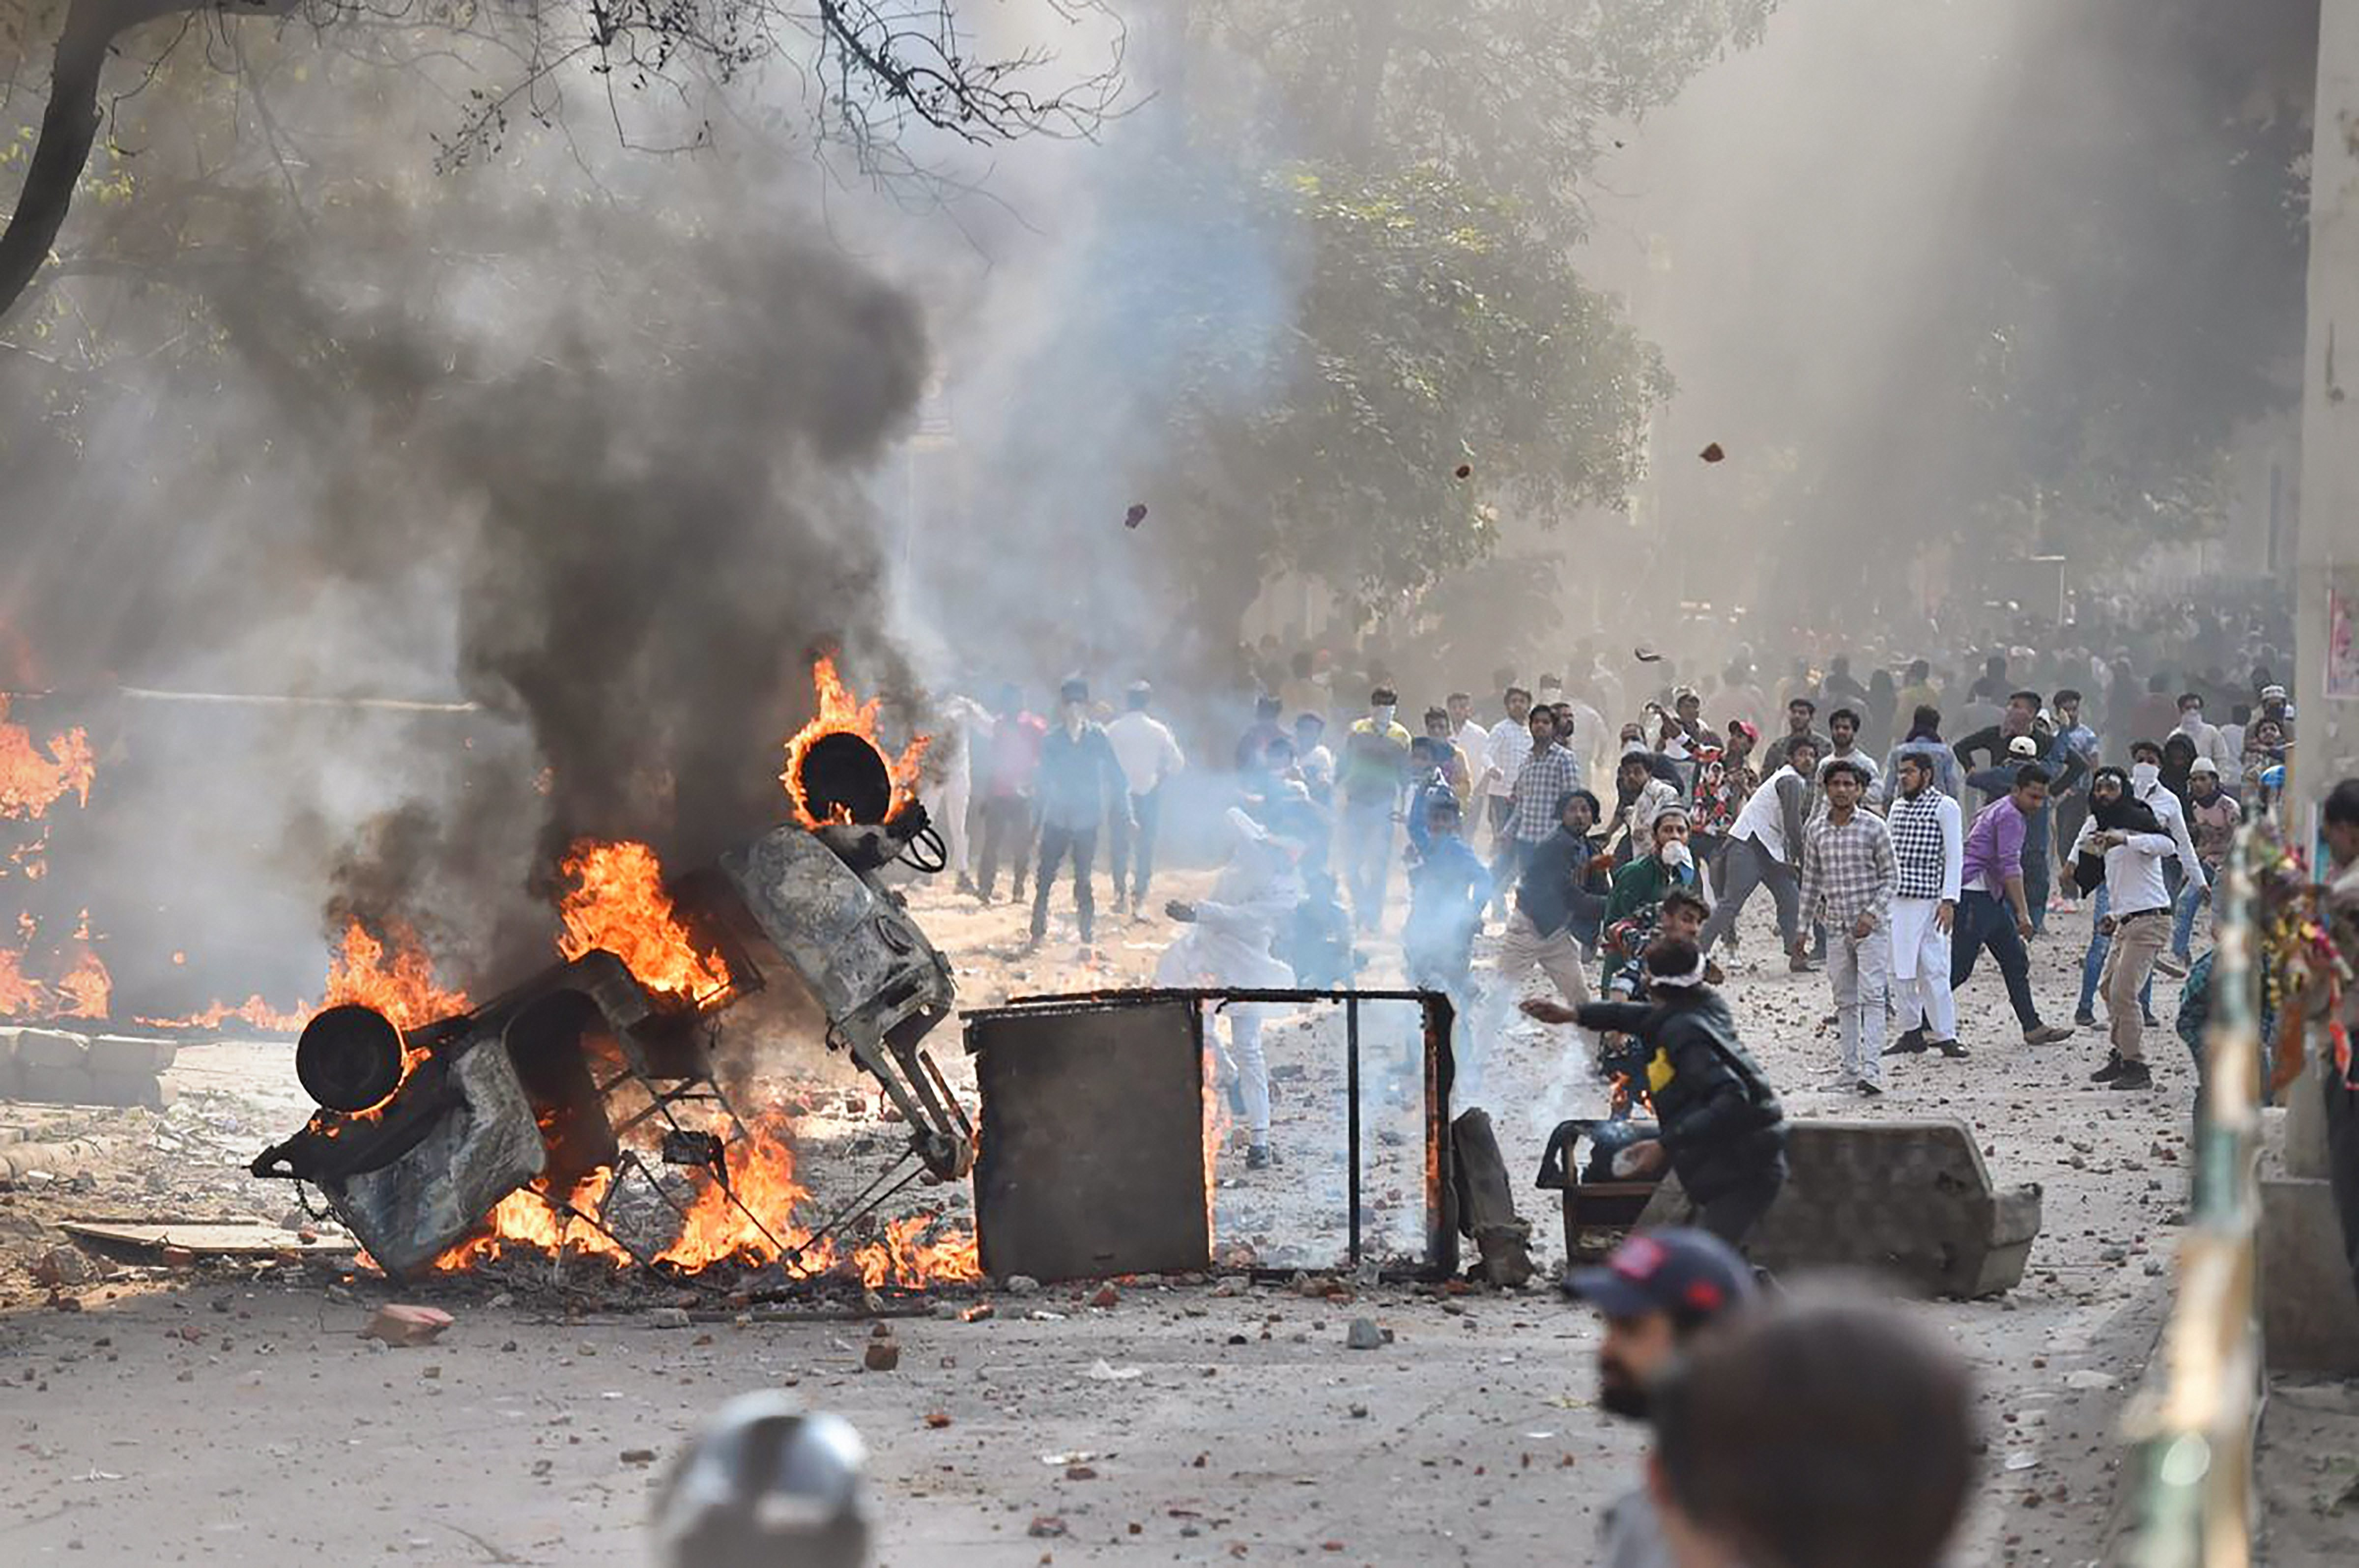 Vehicles set ablaze as protesters throw brick-bats during clashes between a group of anti-CAA protestors and supporters of the Citizenship (Amendment) Act, at Jafrabad in northeast Delhi, Monday, February 24, 2020